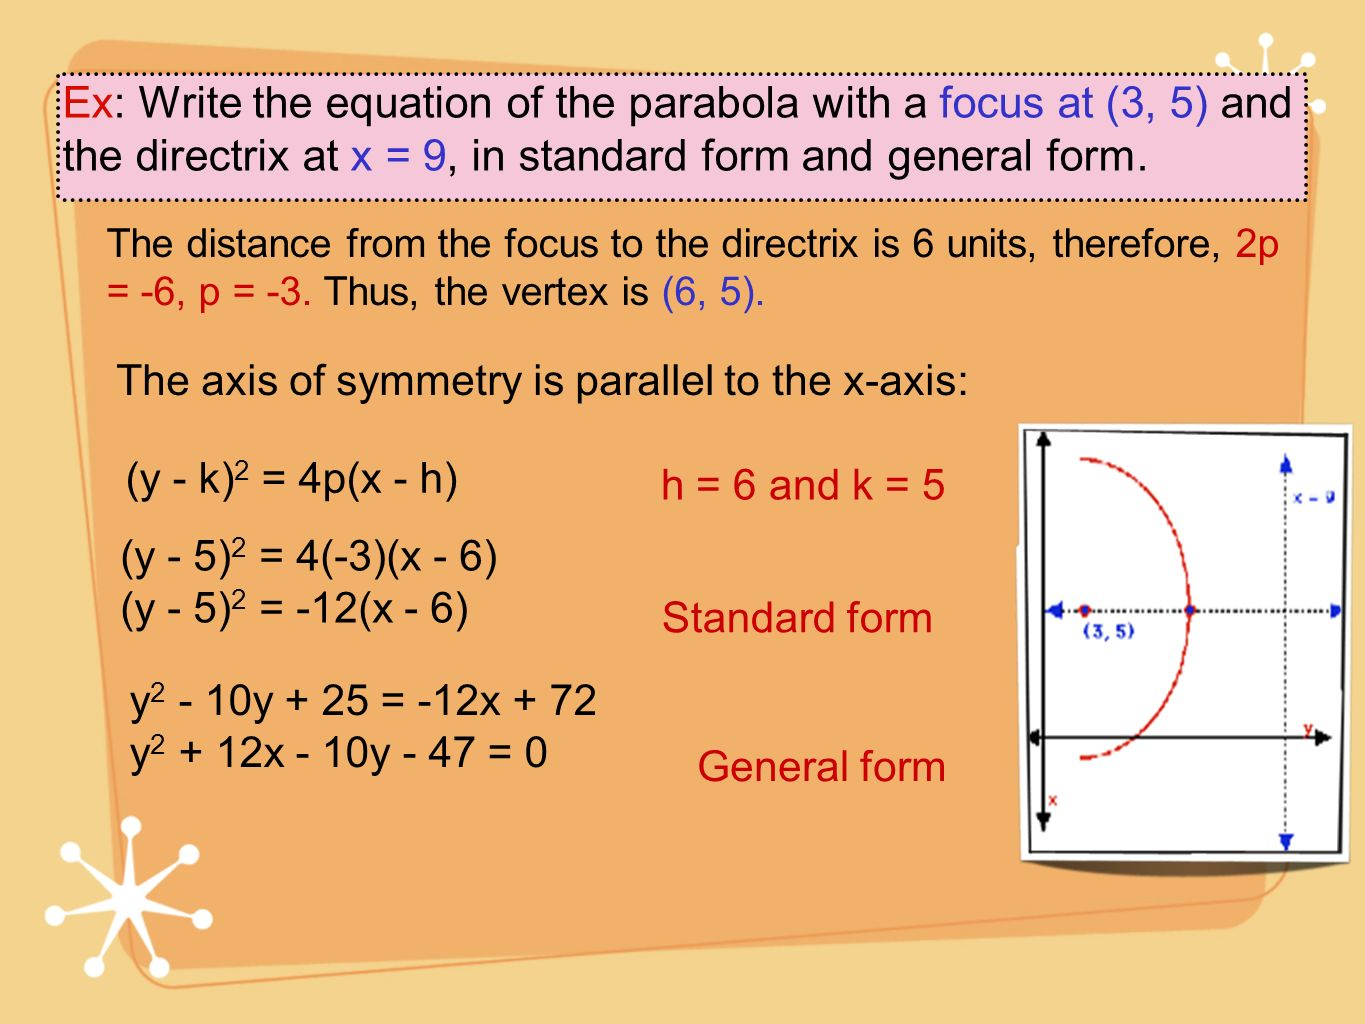 Ex: Write the equation of the parabola with a focus at (3, 5) and the directrix at x = 9, in standard form and general form. The distance from the foc